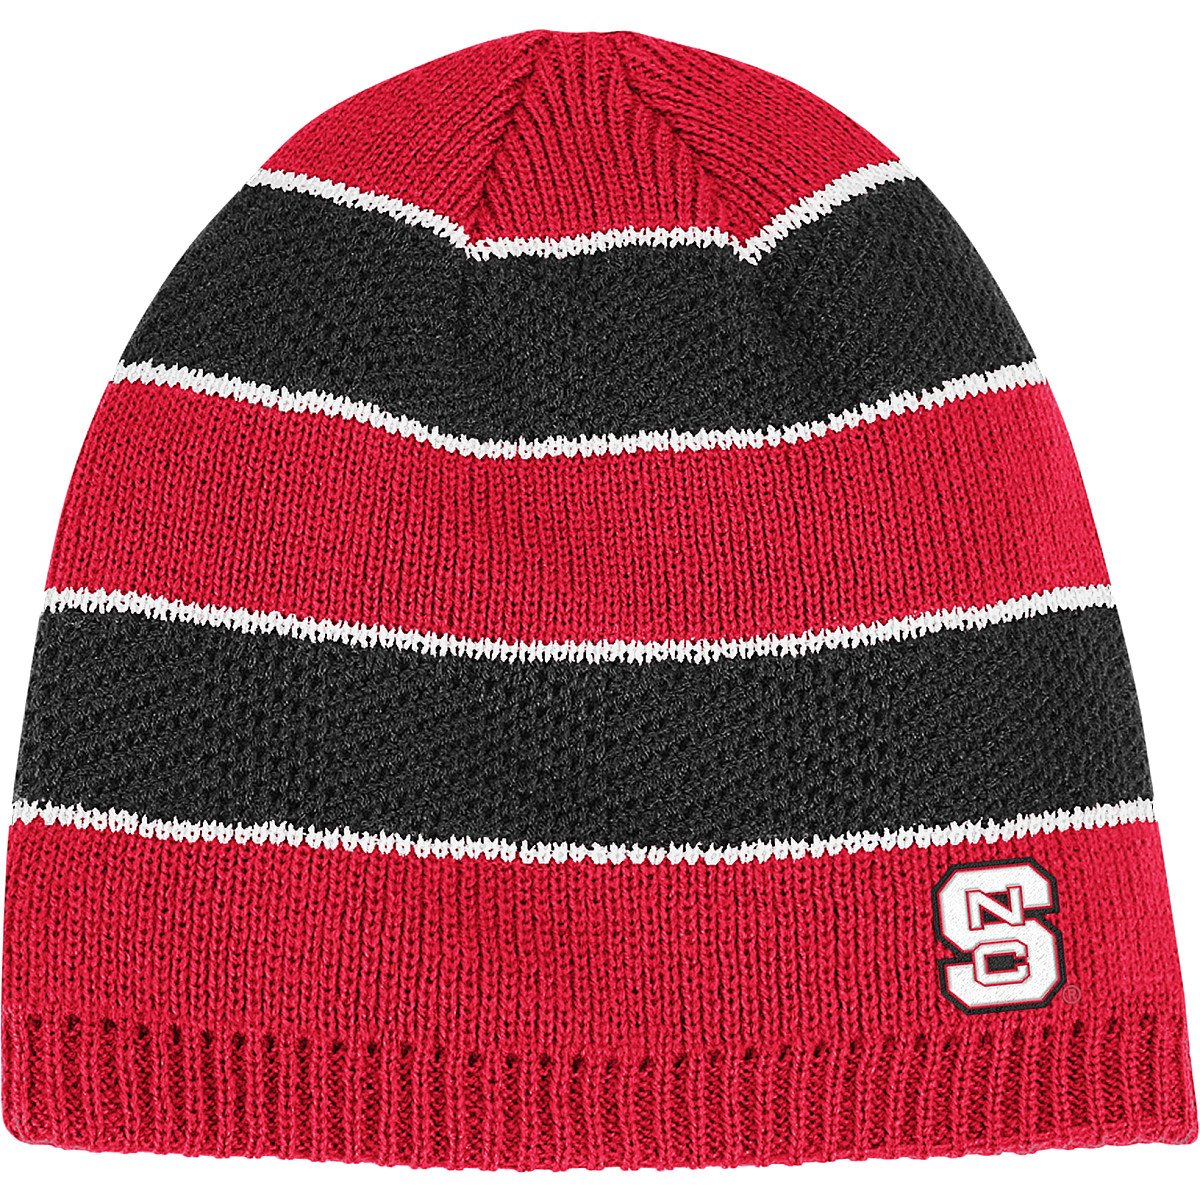 16e505bc09d1cf Amazon.com : adidas NC State Wolfpack Women's Knit Hat One Size Fits All :  Sports Fan Baseball Caps : Sports & Outdoors